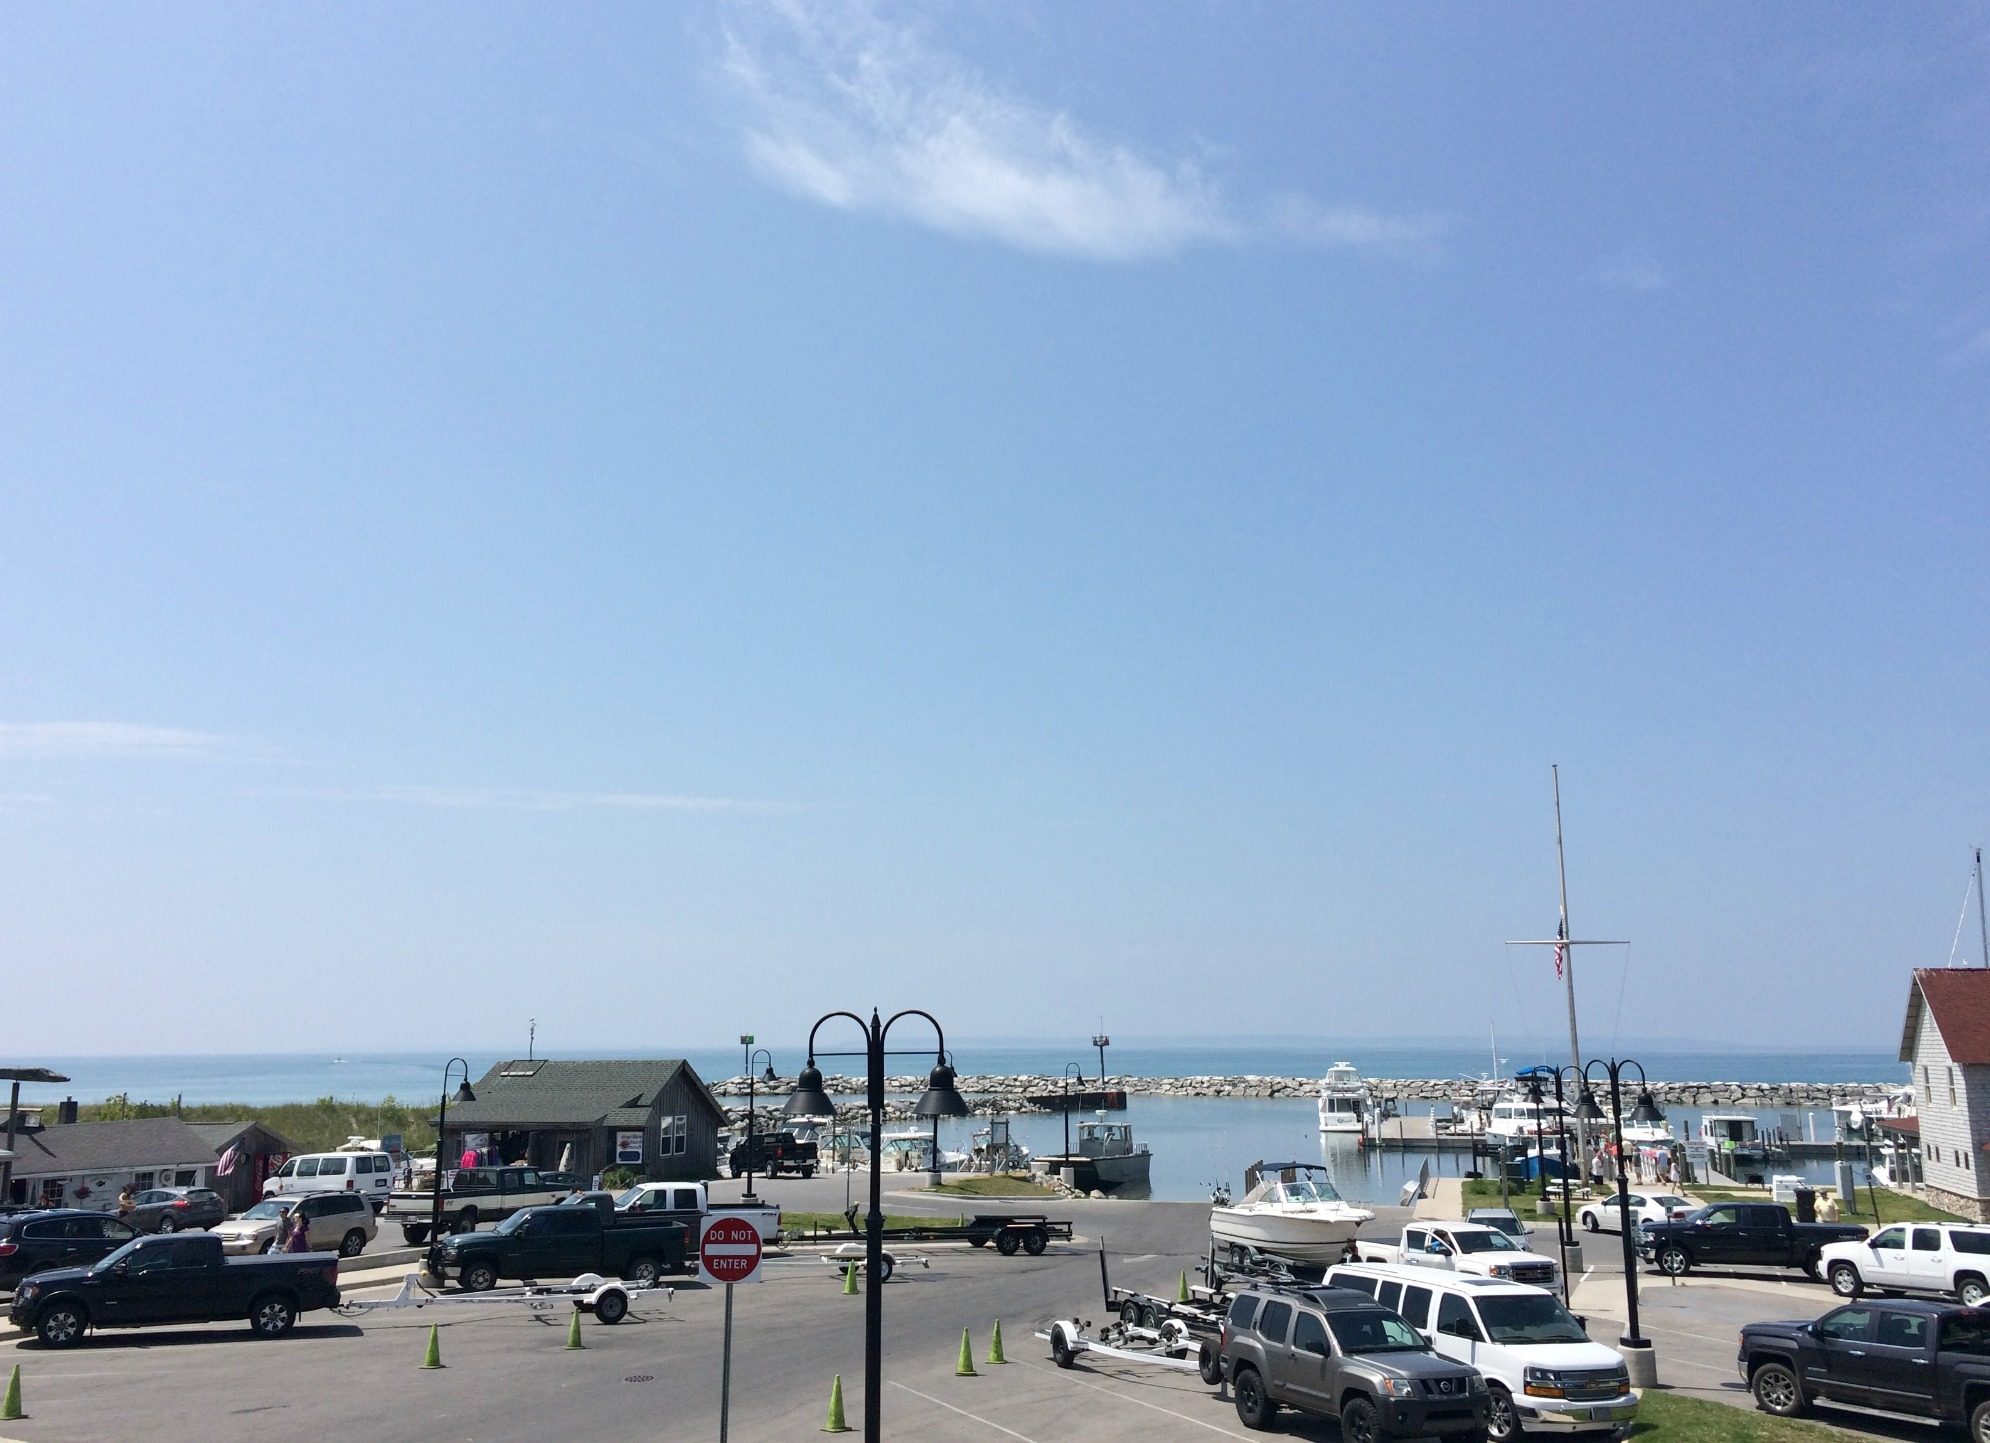 leland fishing town, mi